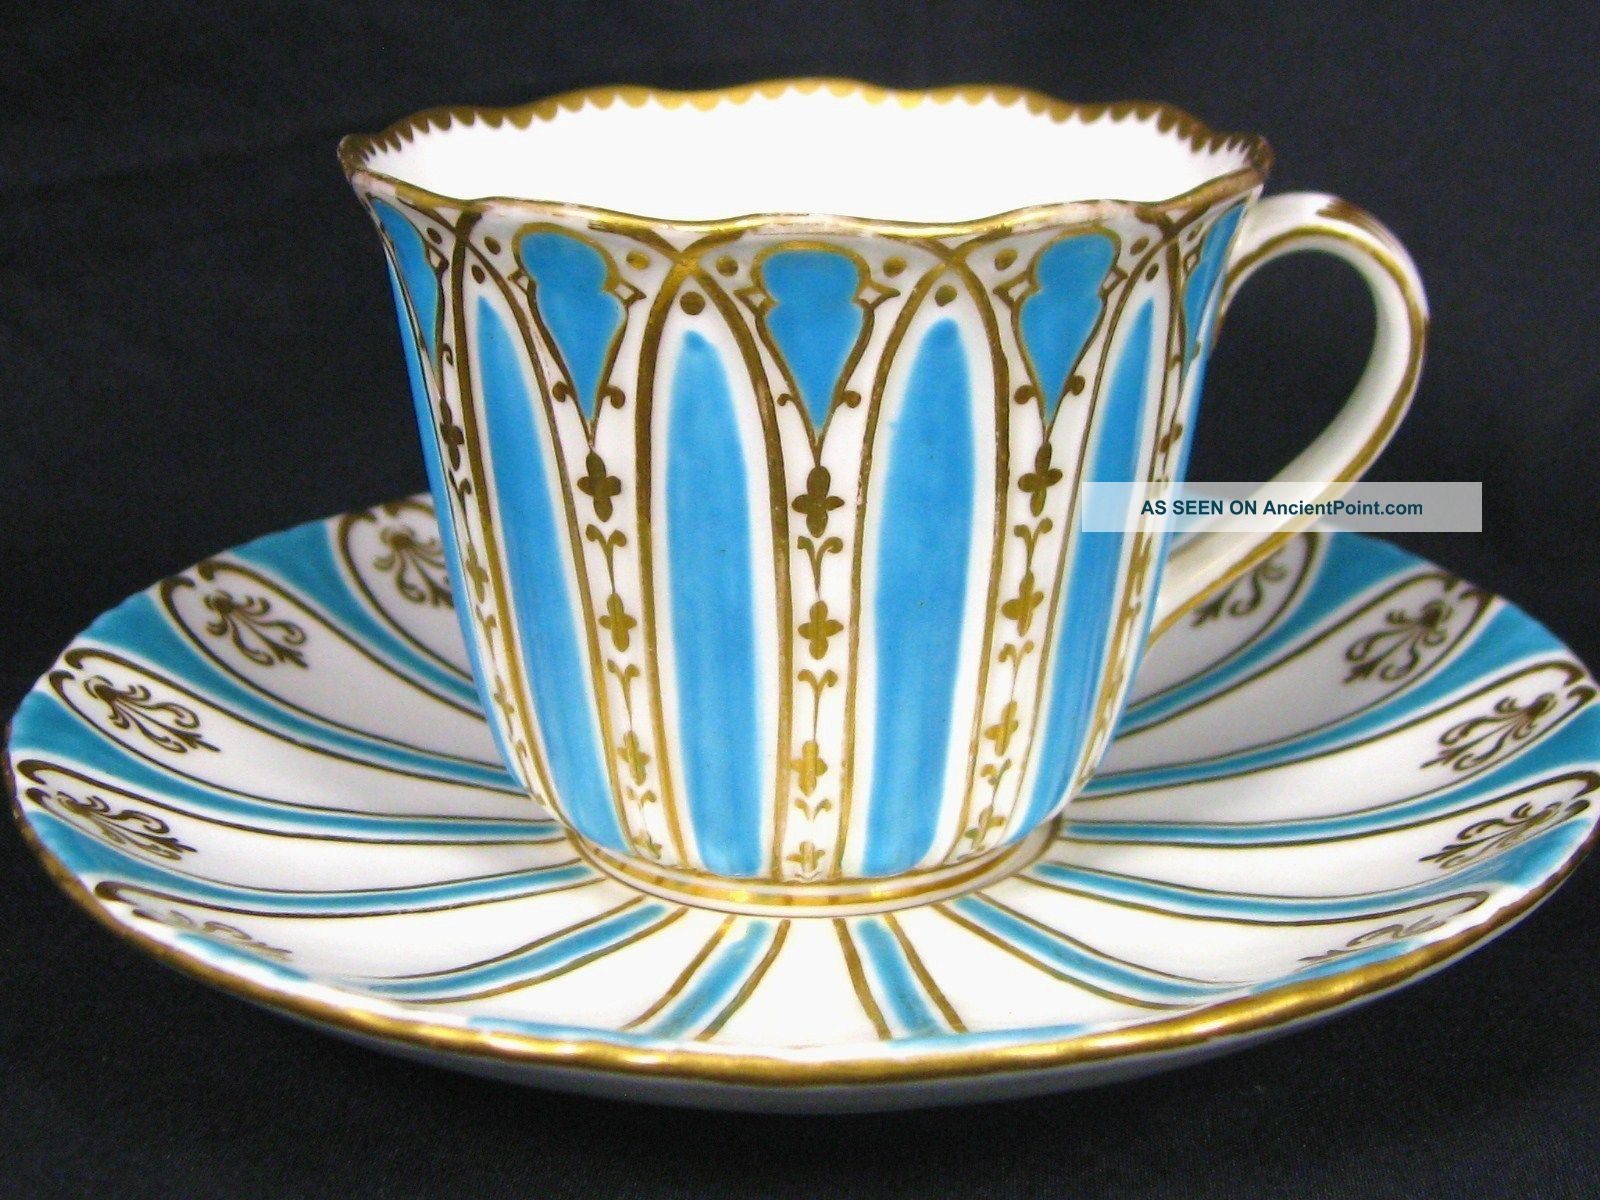 1830 Davenport Turquoise Enamel Fancy Gold Tea Cup And Saucer Marriage Cups & Saucers